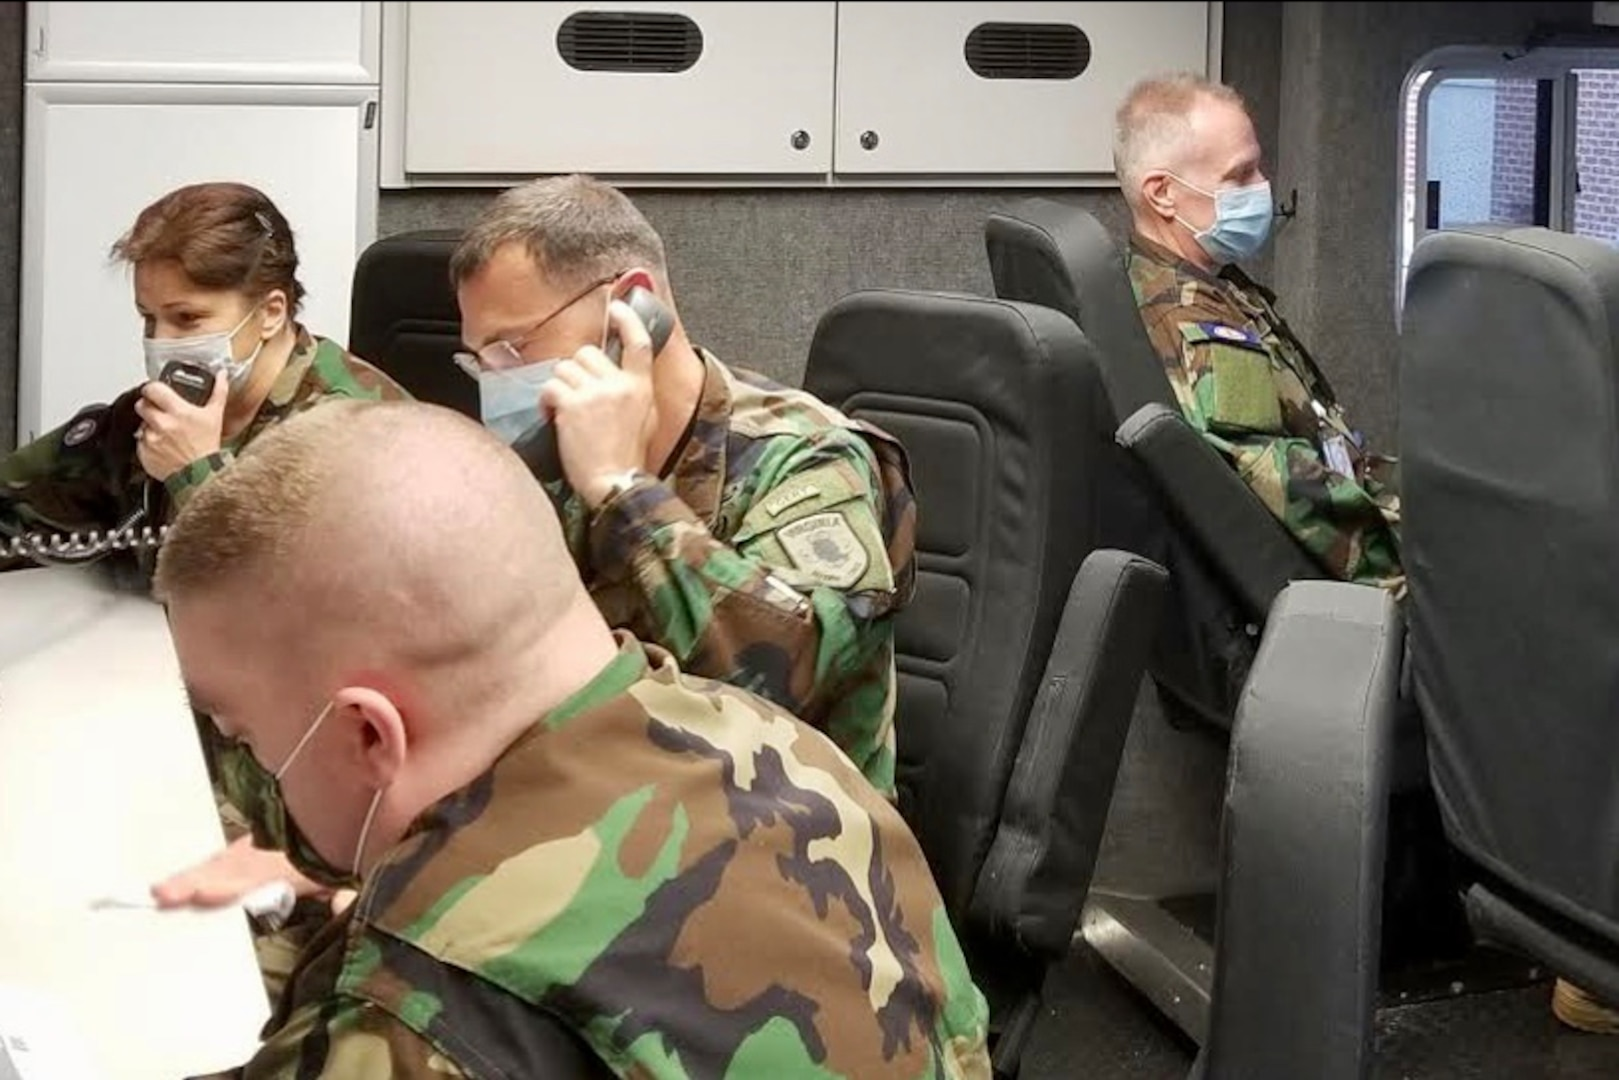 VDF assisting in statewide COVID-19 response effort